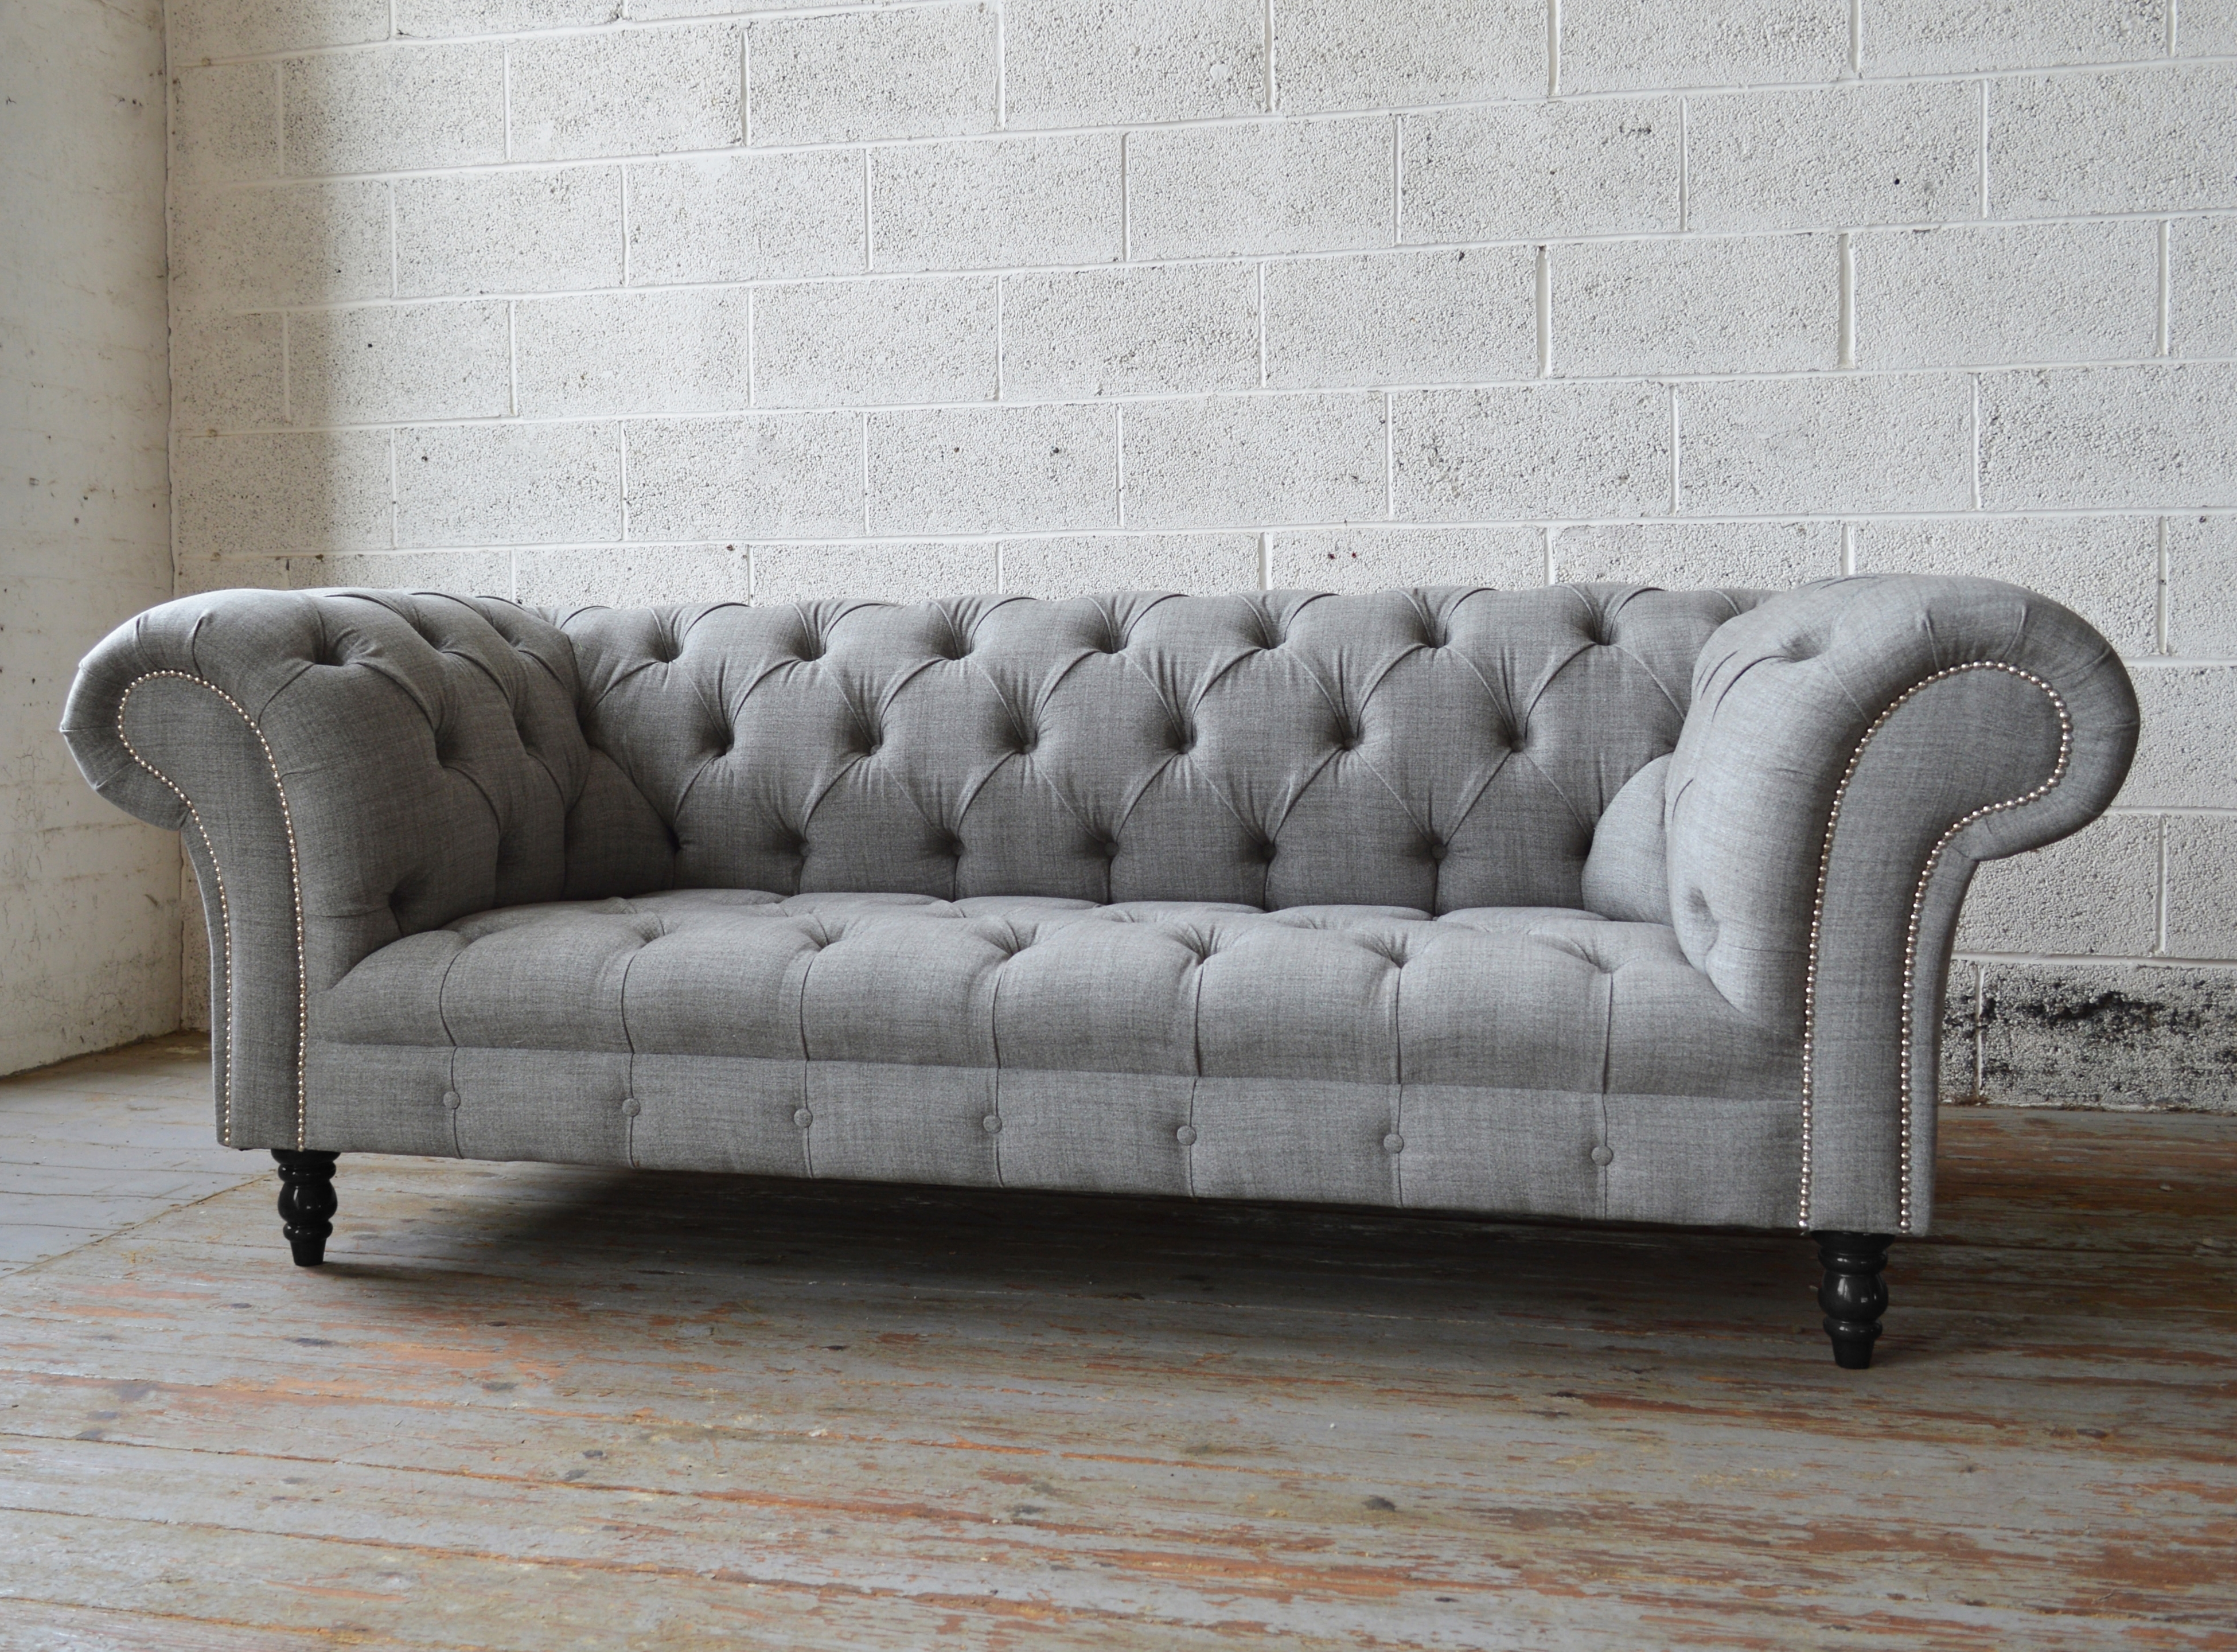 Fashionable Sofas Amazing Grey Leather Chesterfield Sofa Blue Inside Light For Tufted Leather Chesterfield Sofas (View 14 of 15)